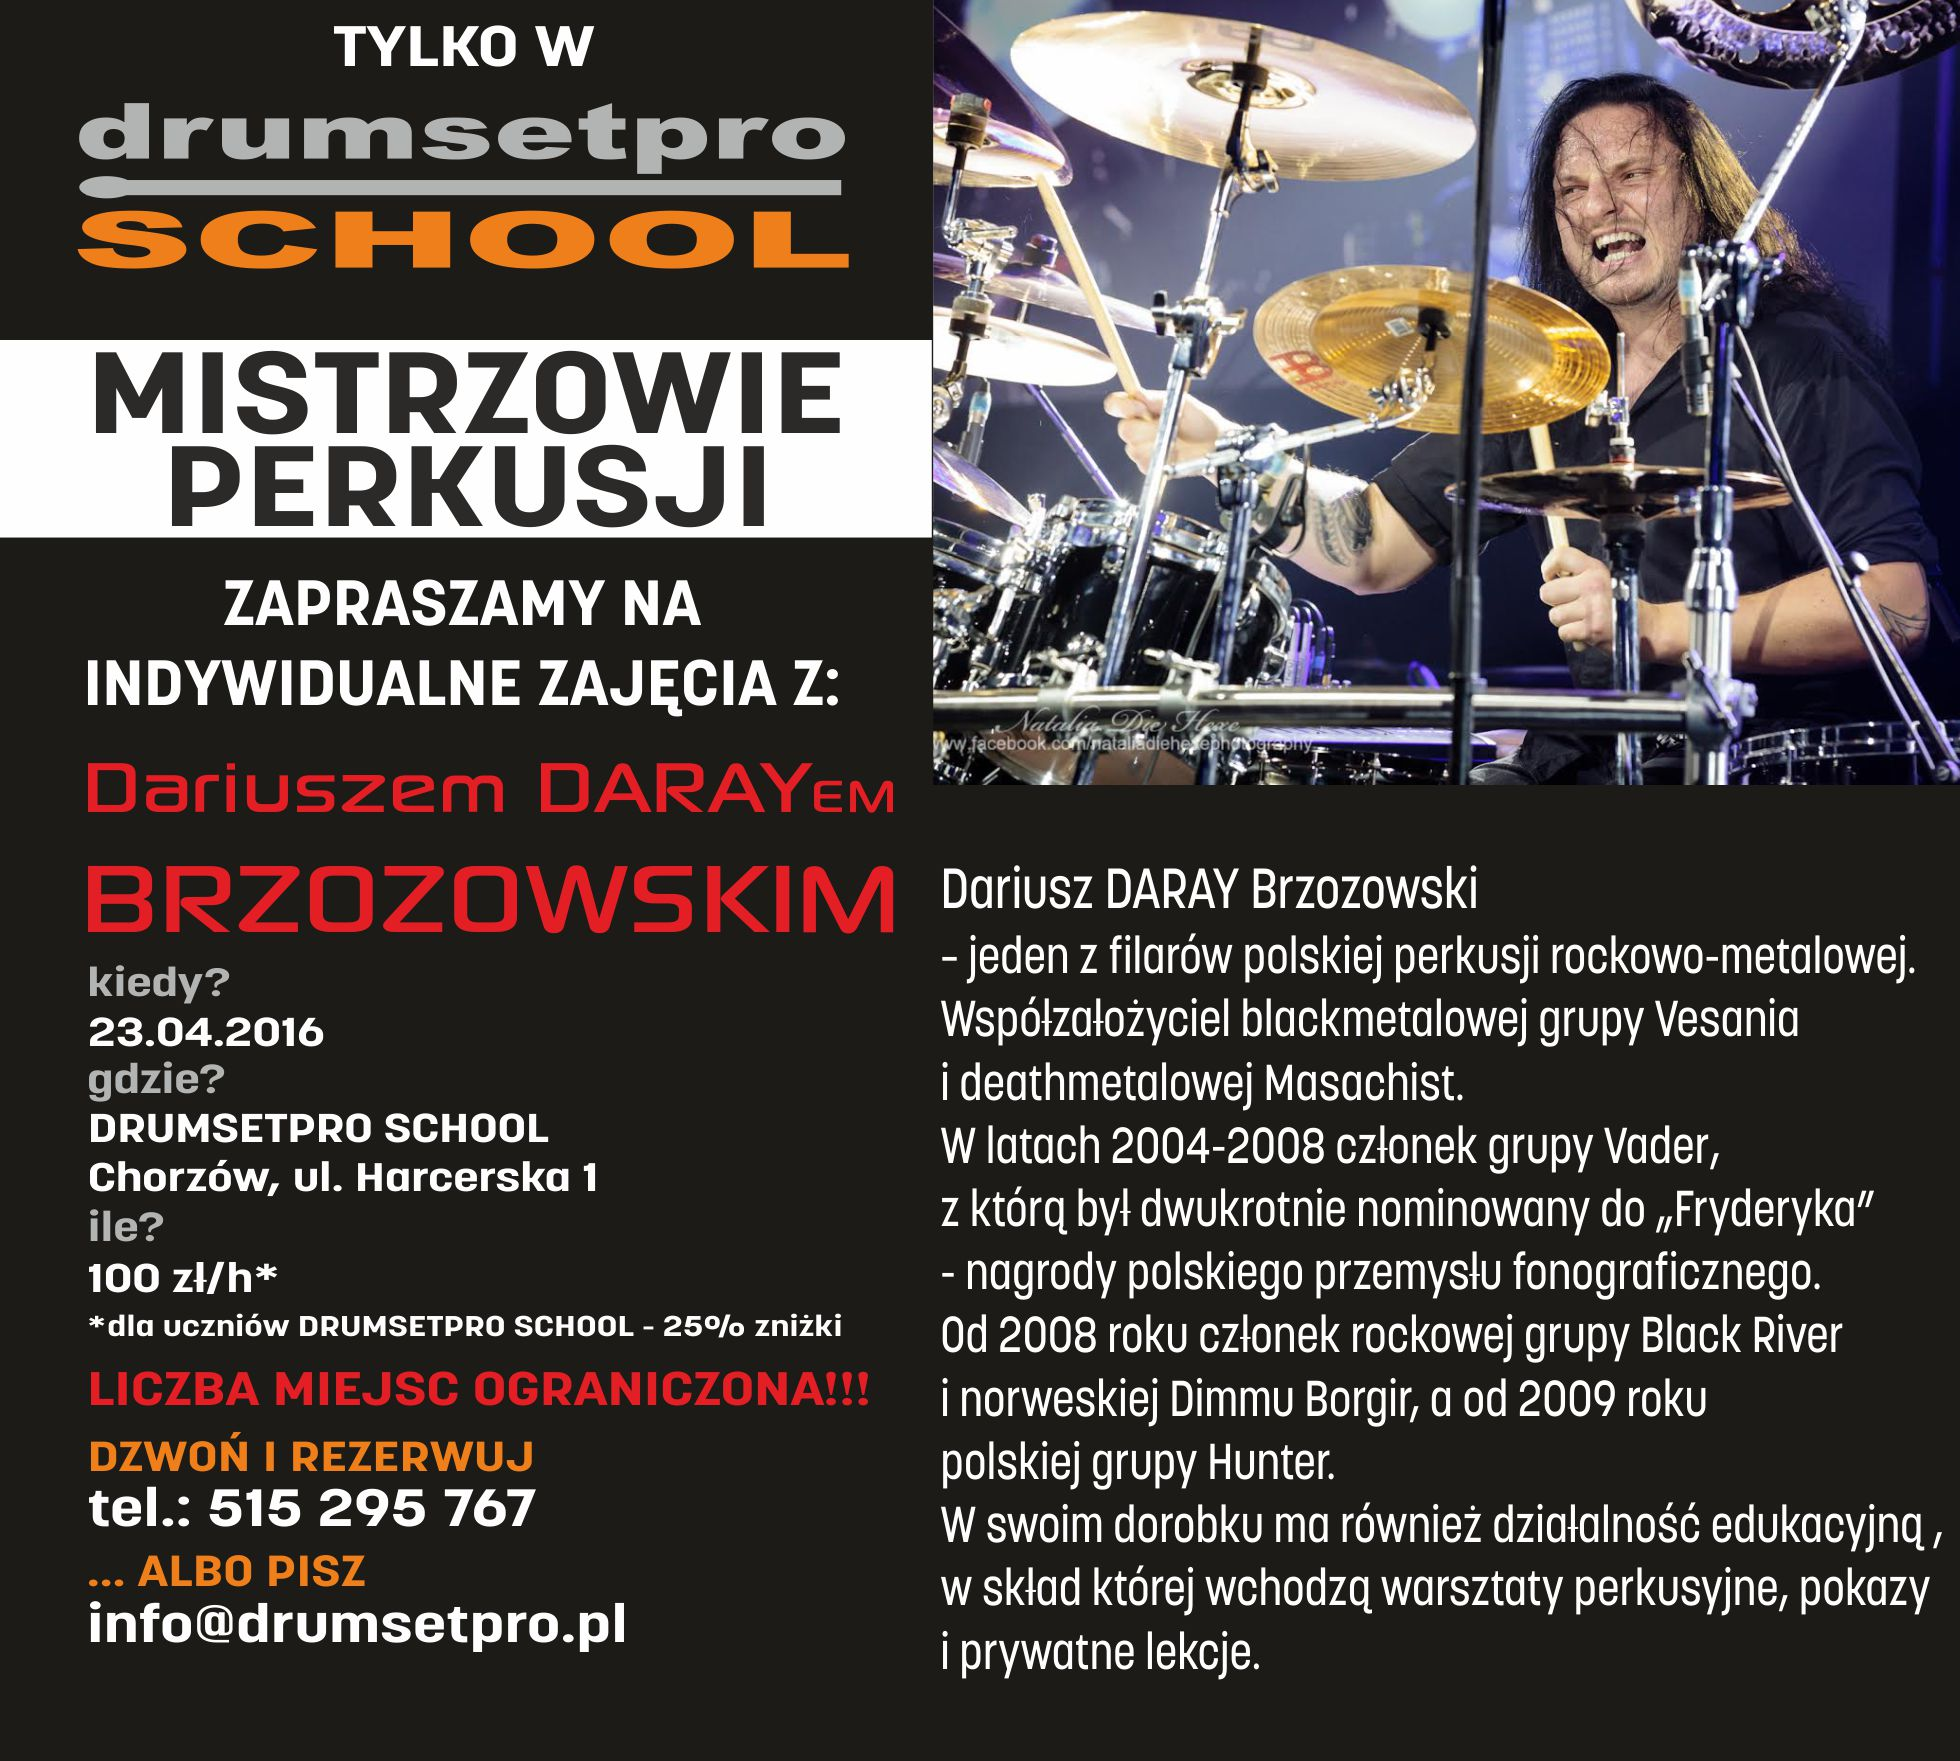 Individual drumming lessons with Daray in Drumsetpro School